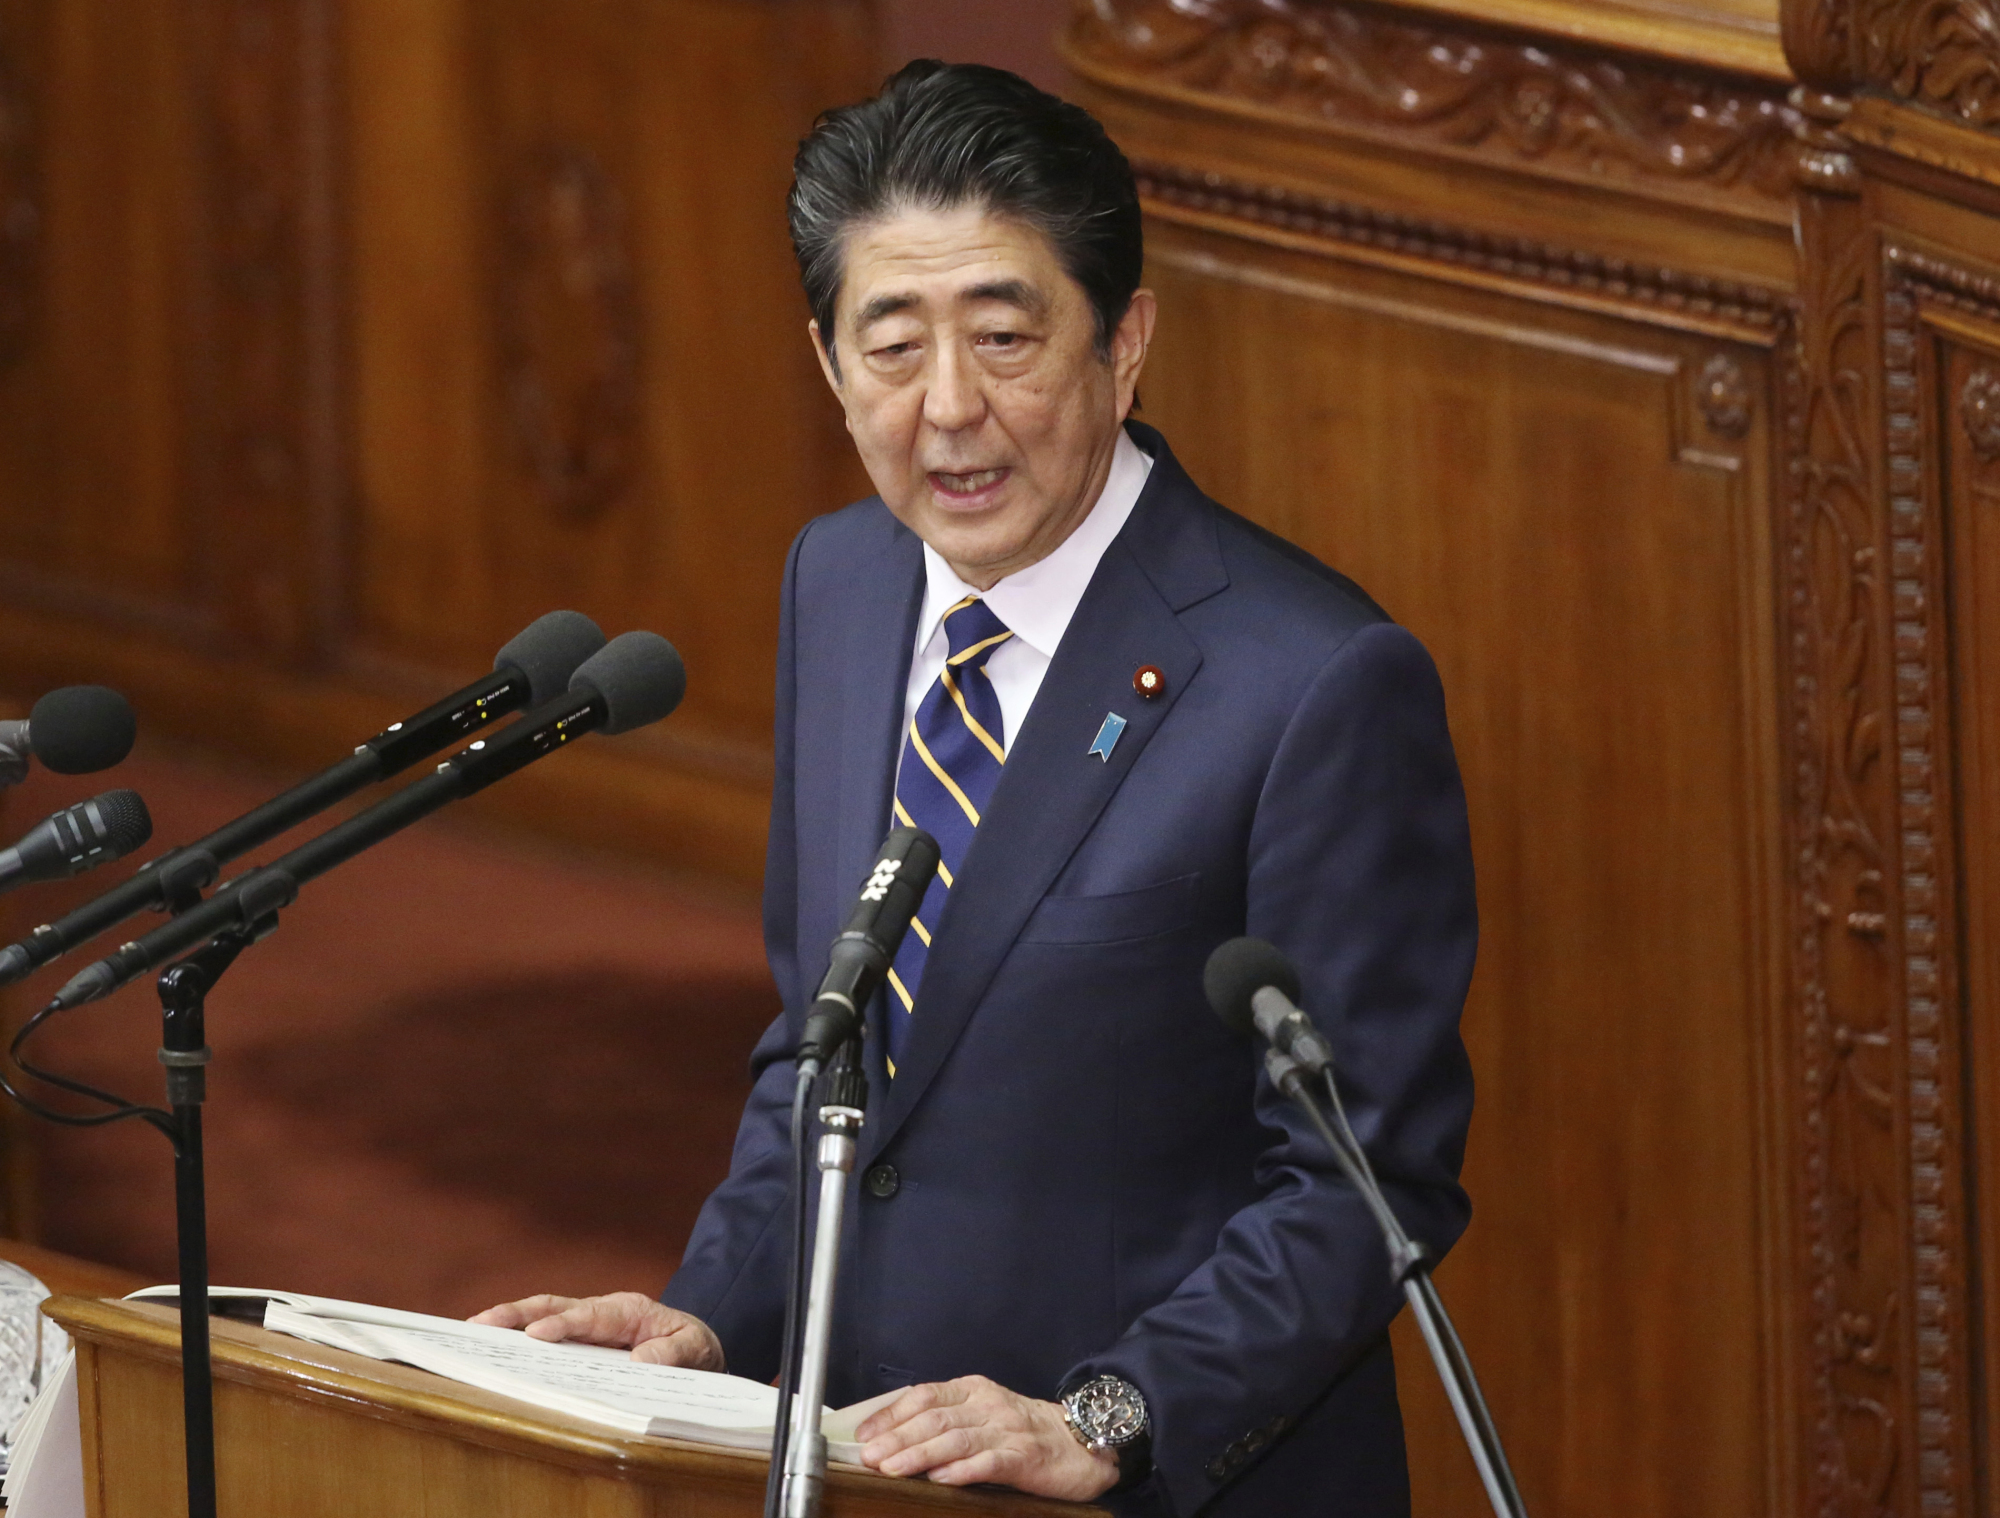 Delivering his policy speech in the Diet on Jan. 28, Prime Minister Shinzo Abe stated that he will further expand his country's already improving ties with China, but said Japan still needs to bolster its defense capability amid concern about Chinese military activity and uncertainty over North Korea's denuclearization.   AP